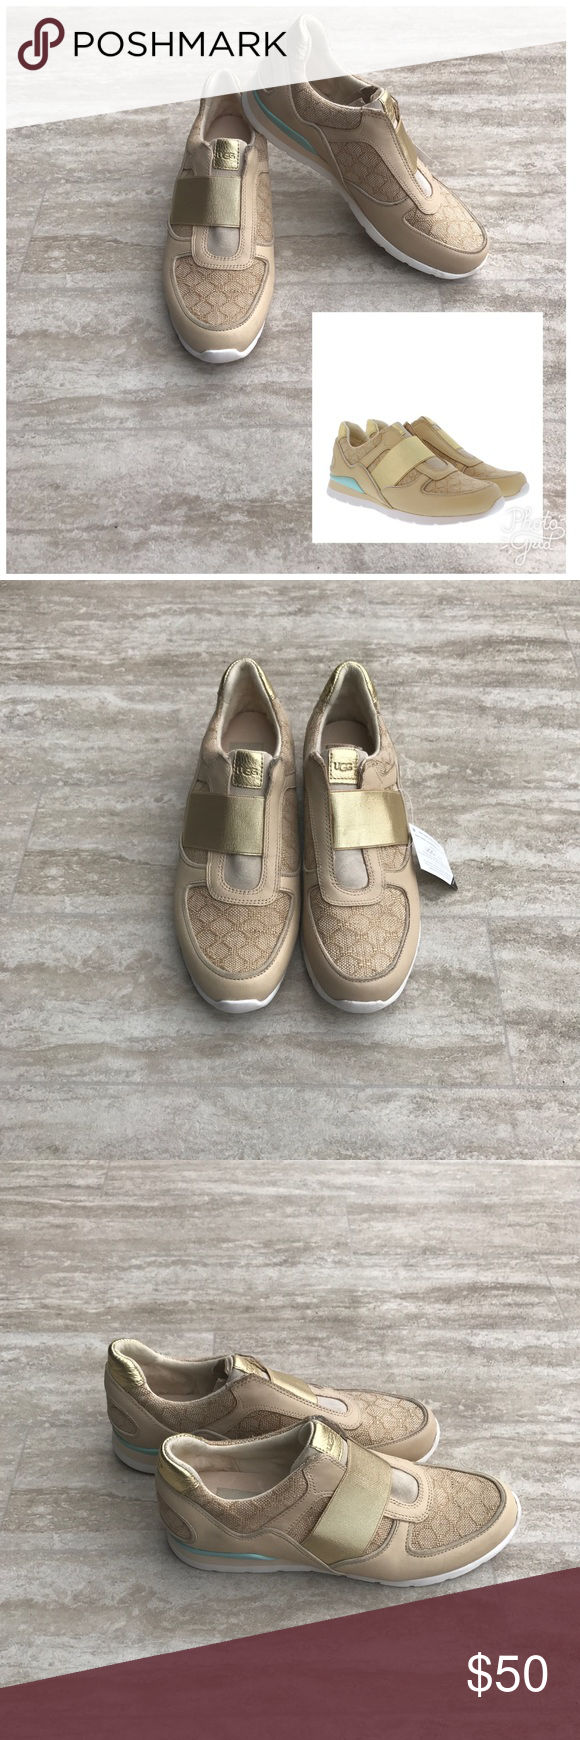 fc7f81ca1c3 Ugg Annetta Gold Slip On Shoes Sz 7 New with defects, had scuffing ...